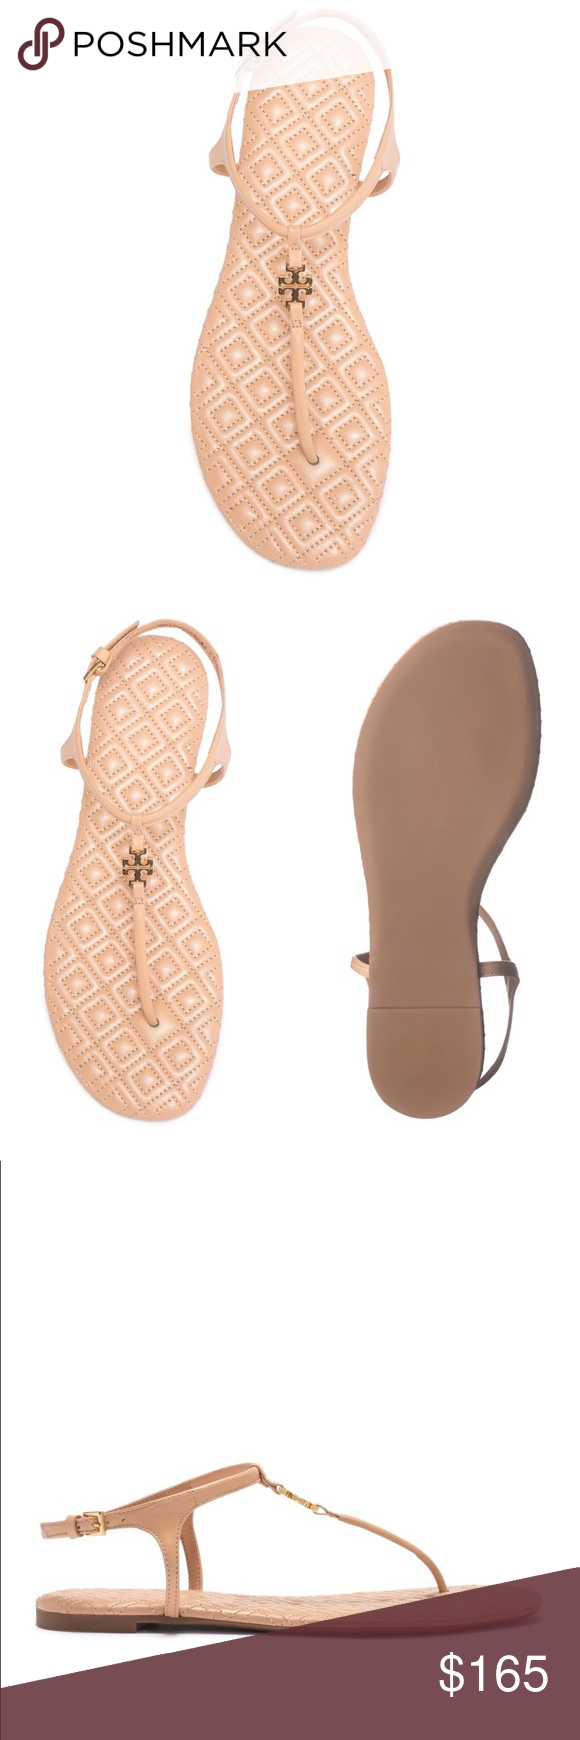 40eced12c BNIB Tory Burch Marion Quilted Sandal BNIB Tory Burch Marion Quilted Sandal  Really cute